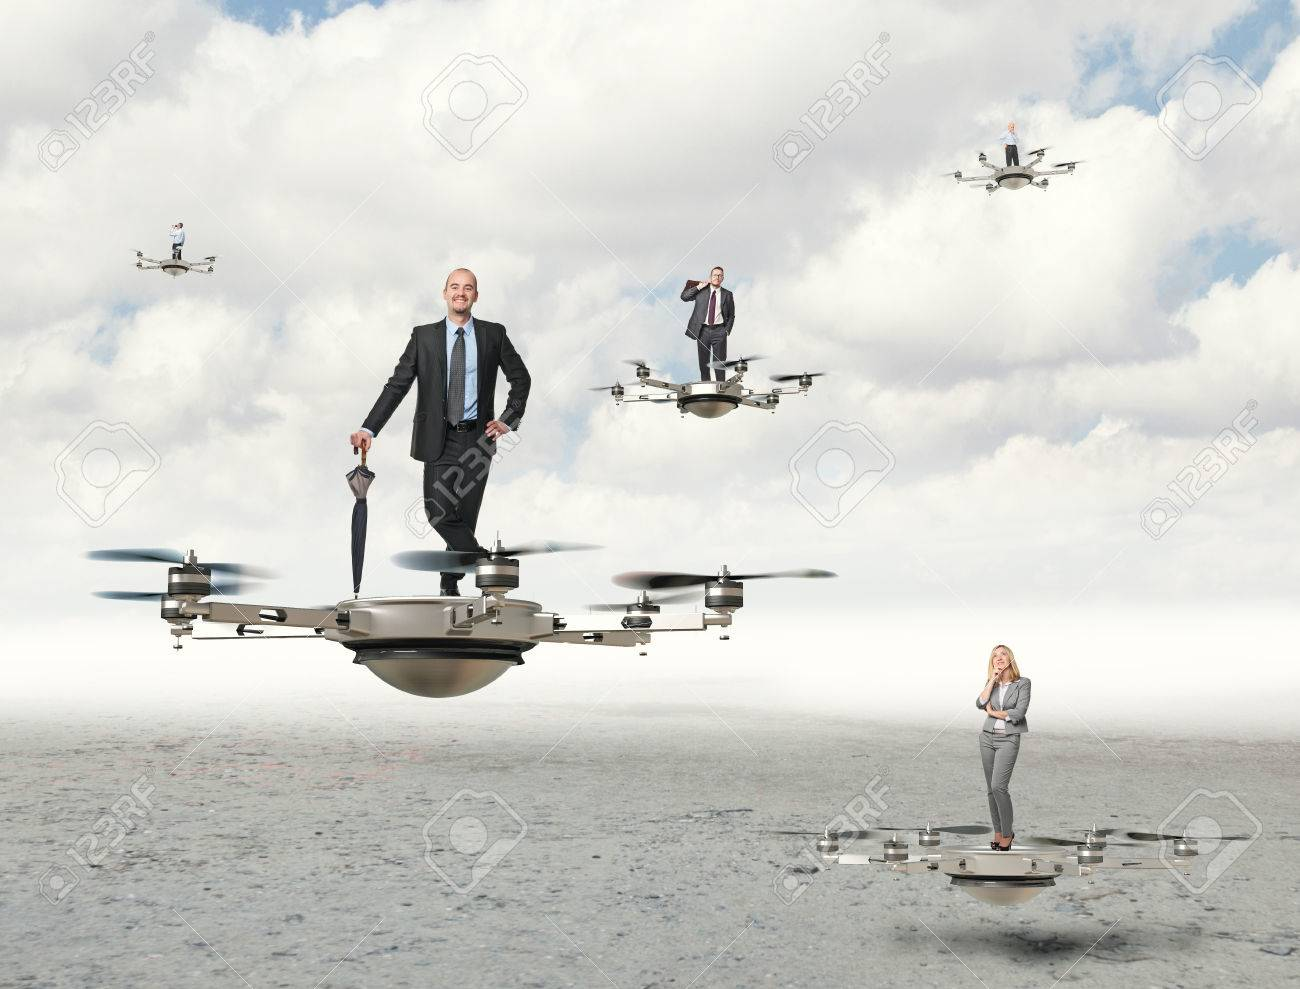 3d Image Of Futuristic Drone And Business People Stock Photo